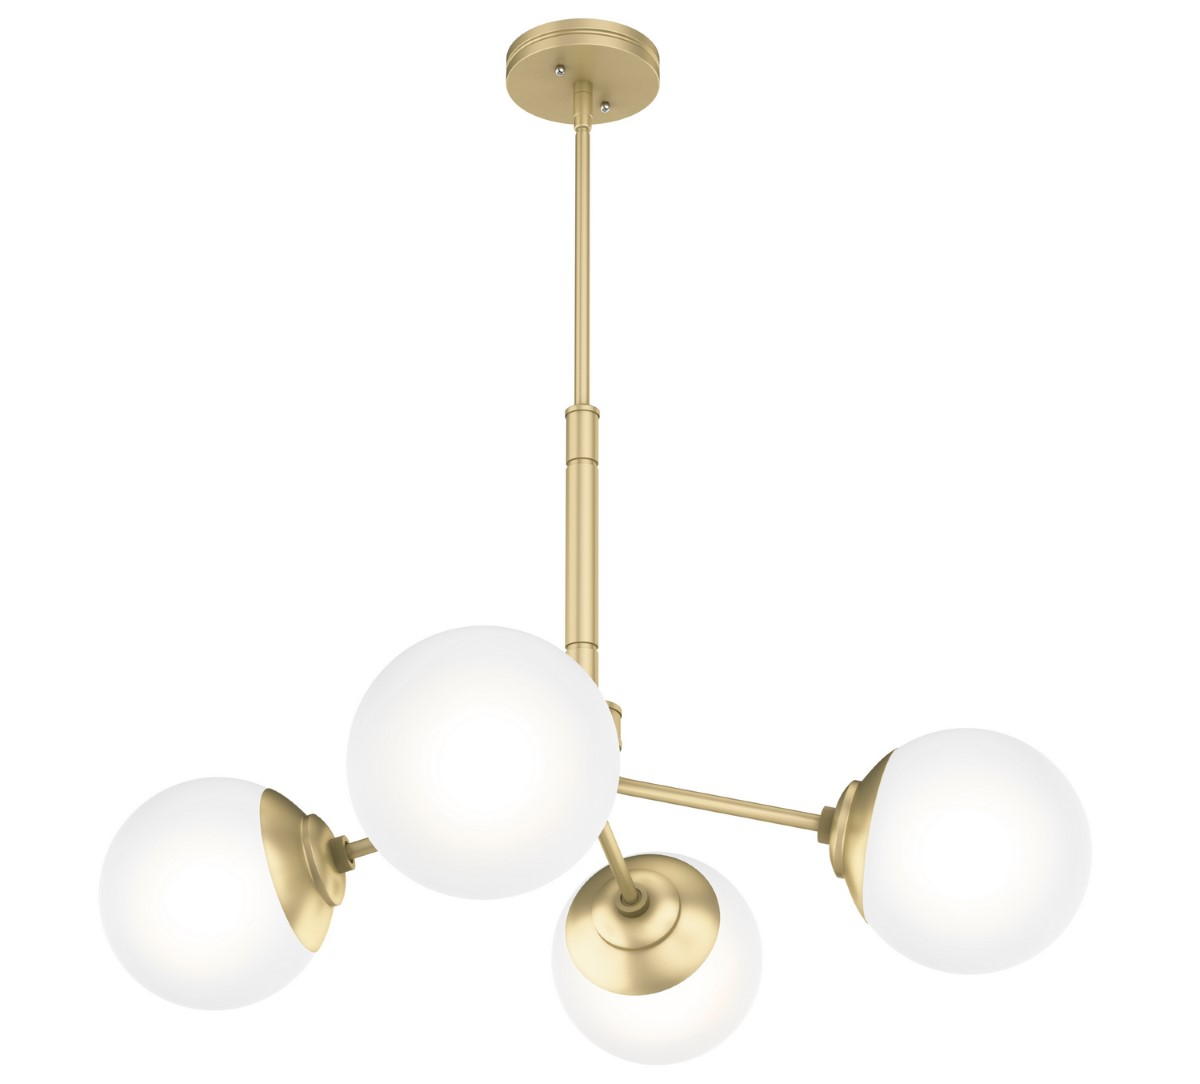 Hunter Hepburn Chandelier with White Glass Shade - Painted Modern Brass (19016)